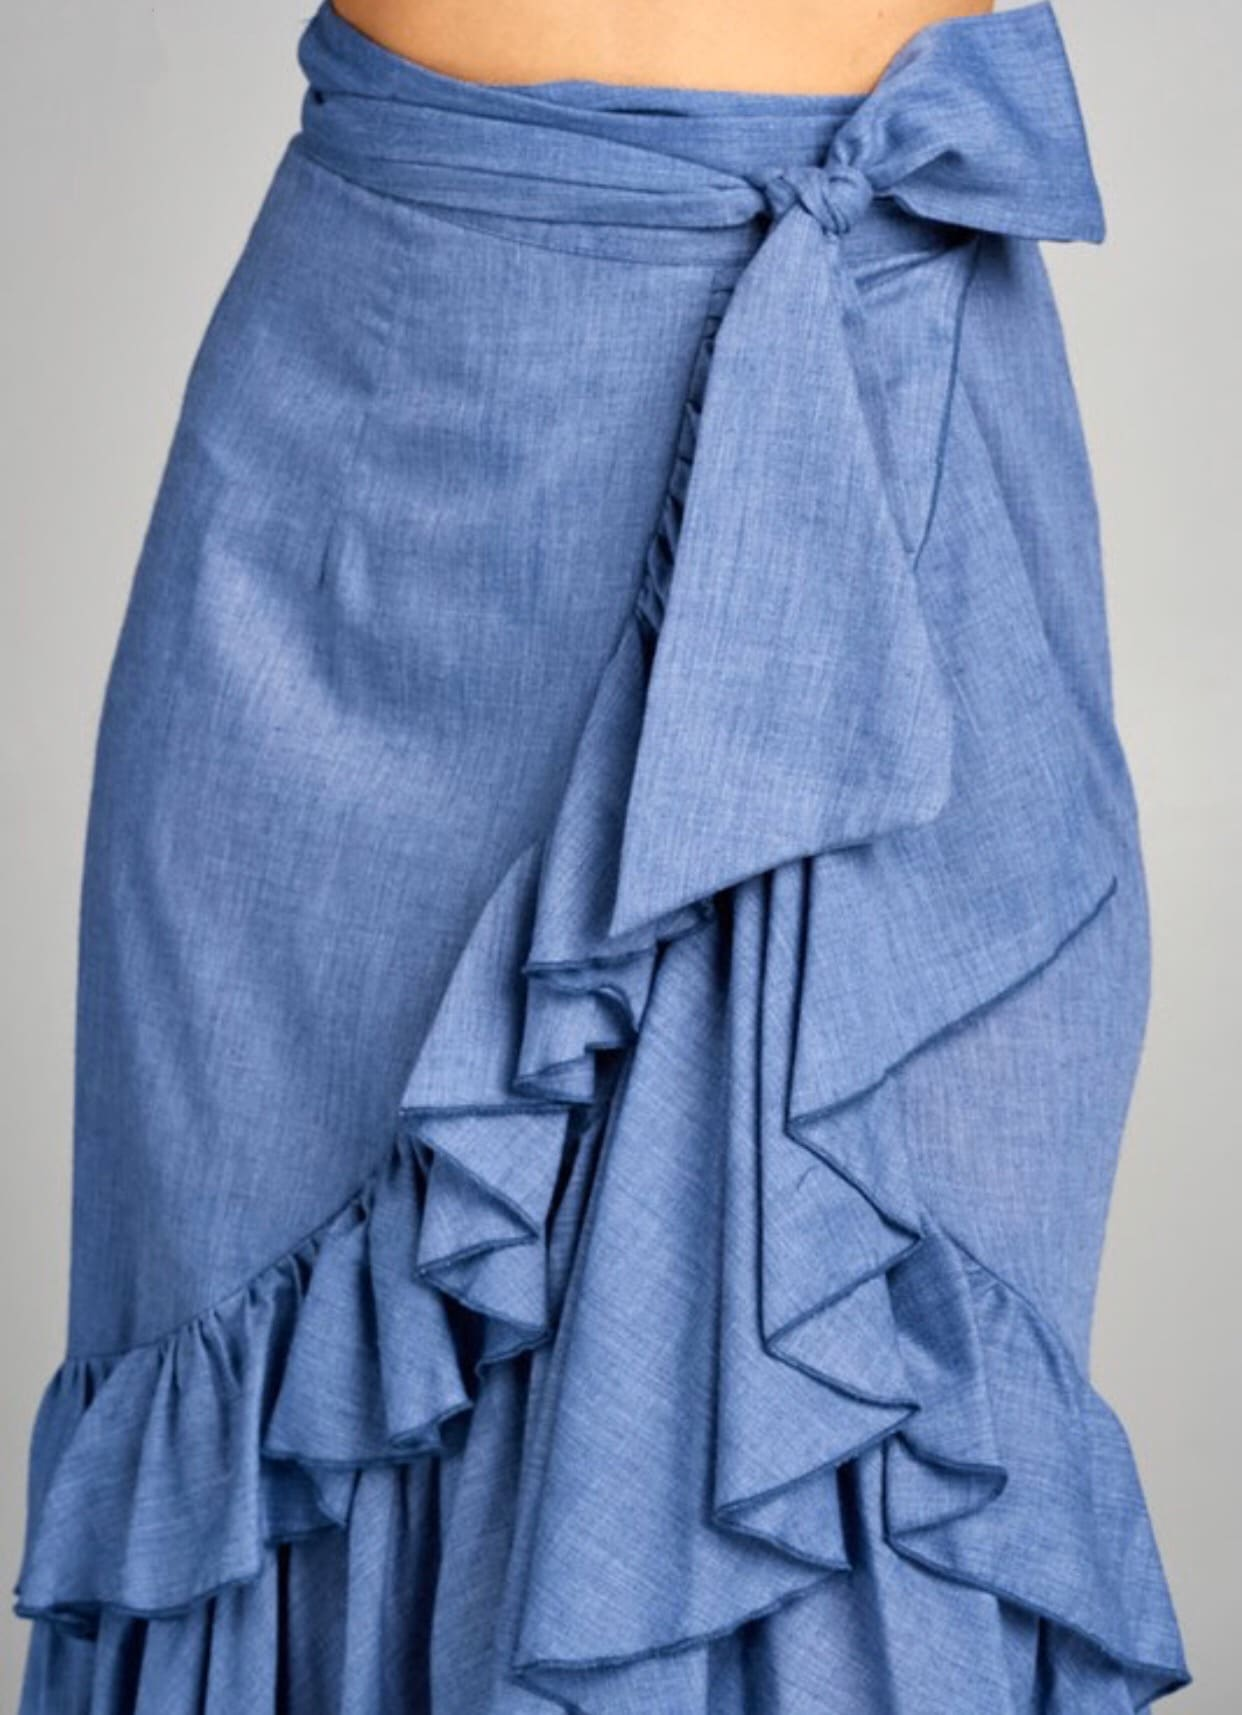 Airy Blue Ruffle Skirt